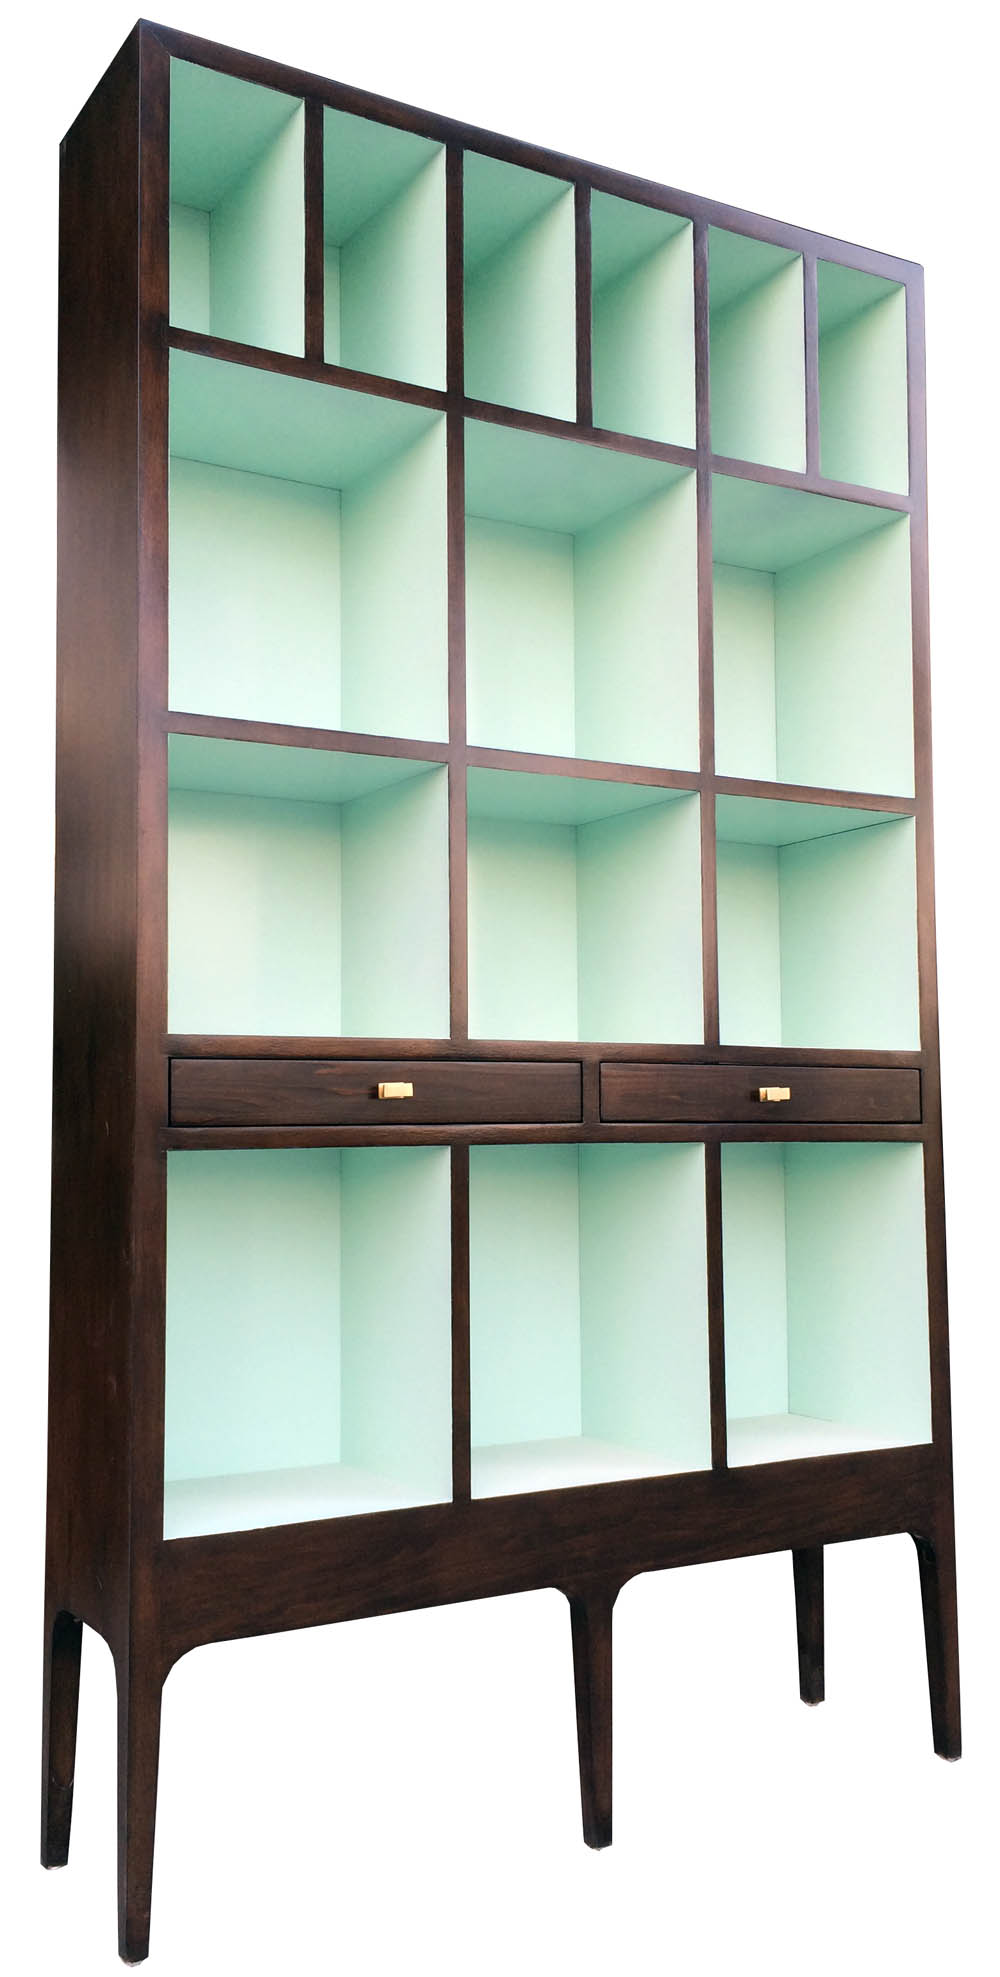 Obsessed Need This Seafoam Mint Green Asap Please Style 2531 Lockwood Bookcase Offered Exclusively By Empiric Contains Two Drawers And Mint Green Furniture Mint Green Kitchen Green Home Decor